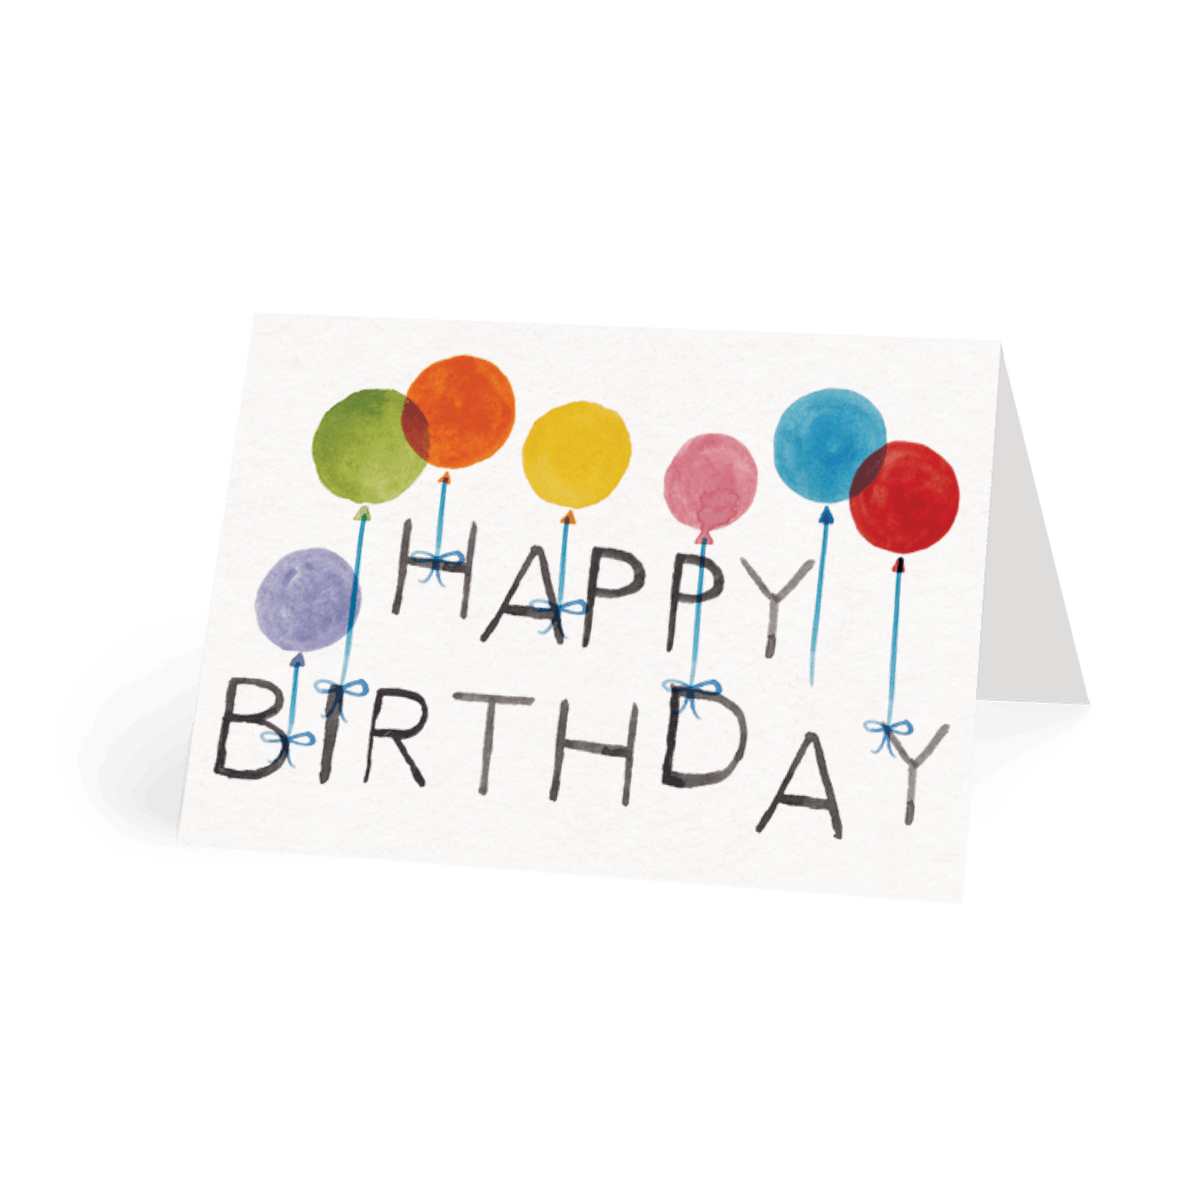 Https%3a%2f%2fwww.papier.com%2fproduct image%2f1192%2f14%2fhappy birthday balloons 343 front 1453909721.png?ixlib=rb 1.1